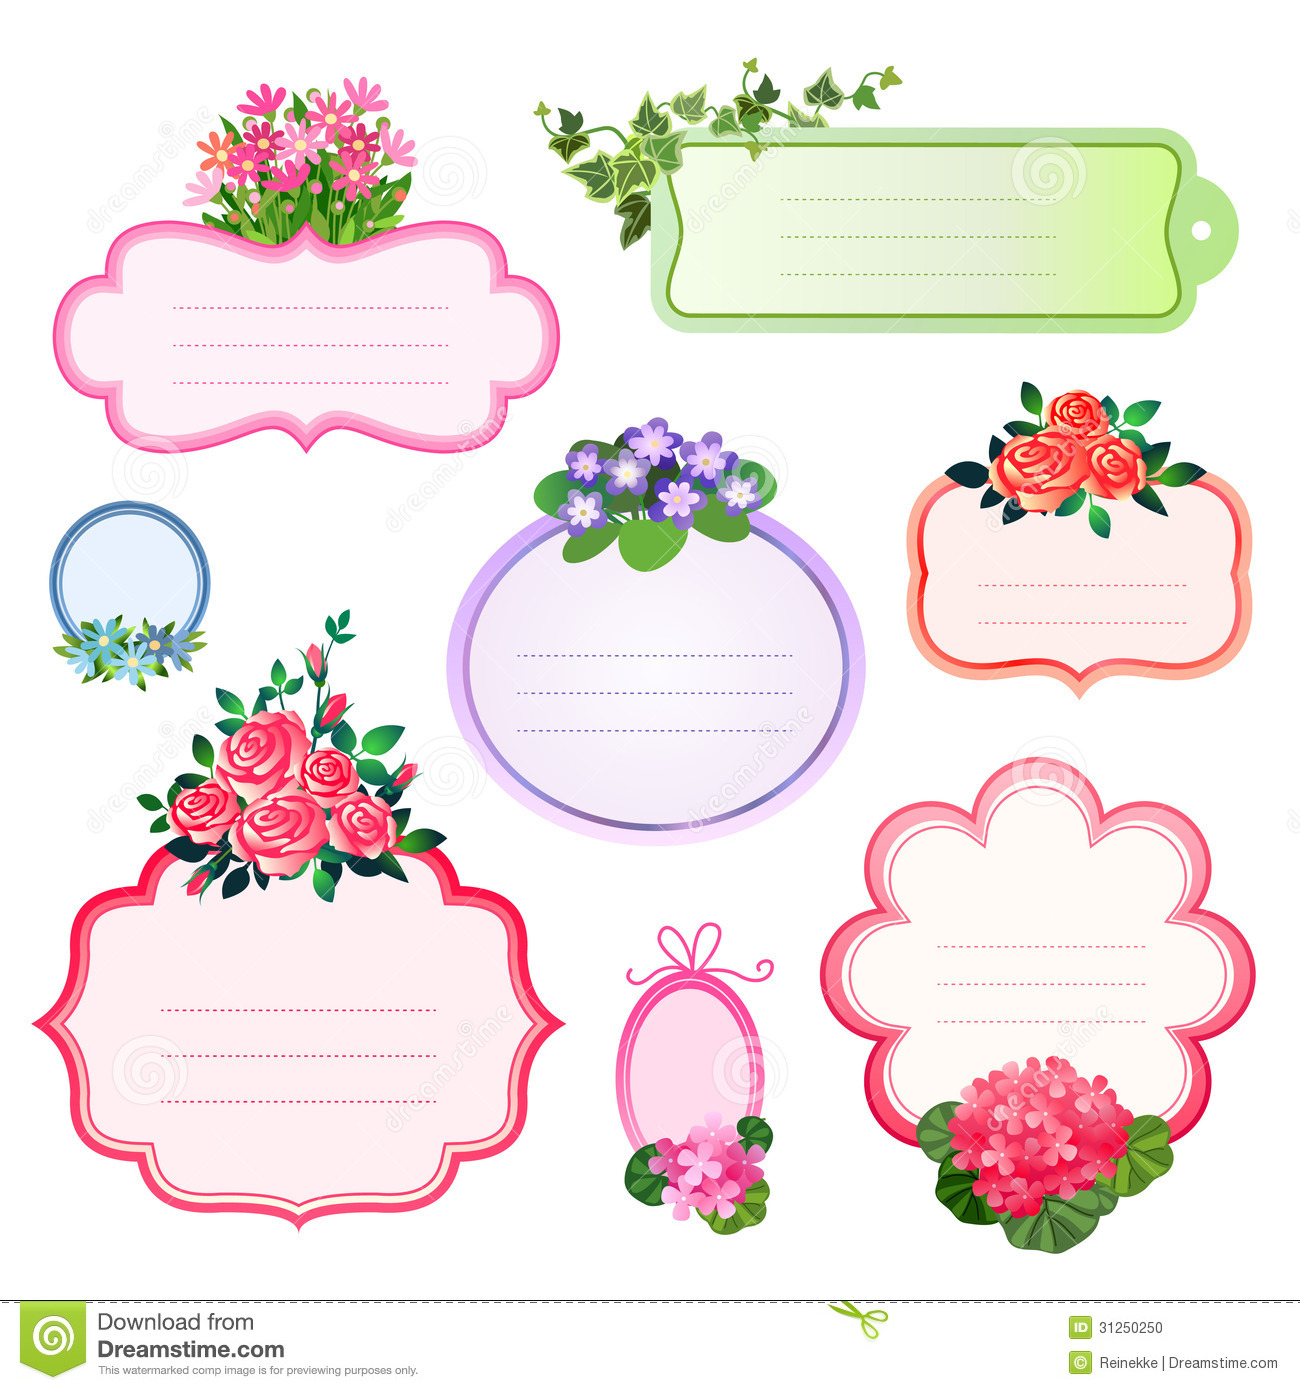 flower labels stock vector illustration of nature. Black Bedroom Furniture Sets. Home Design Ideas